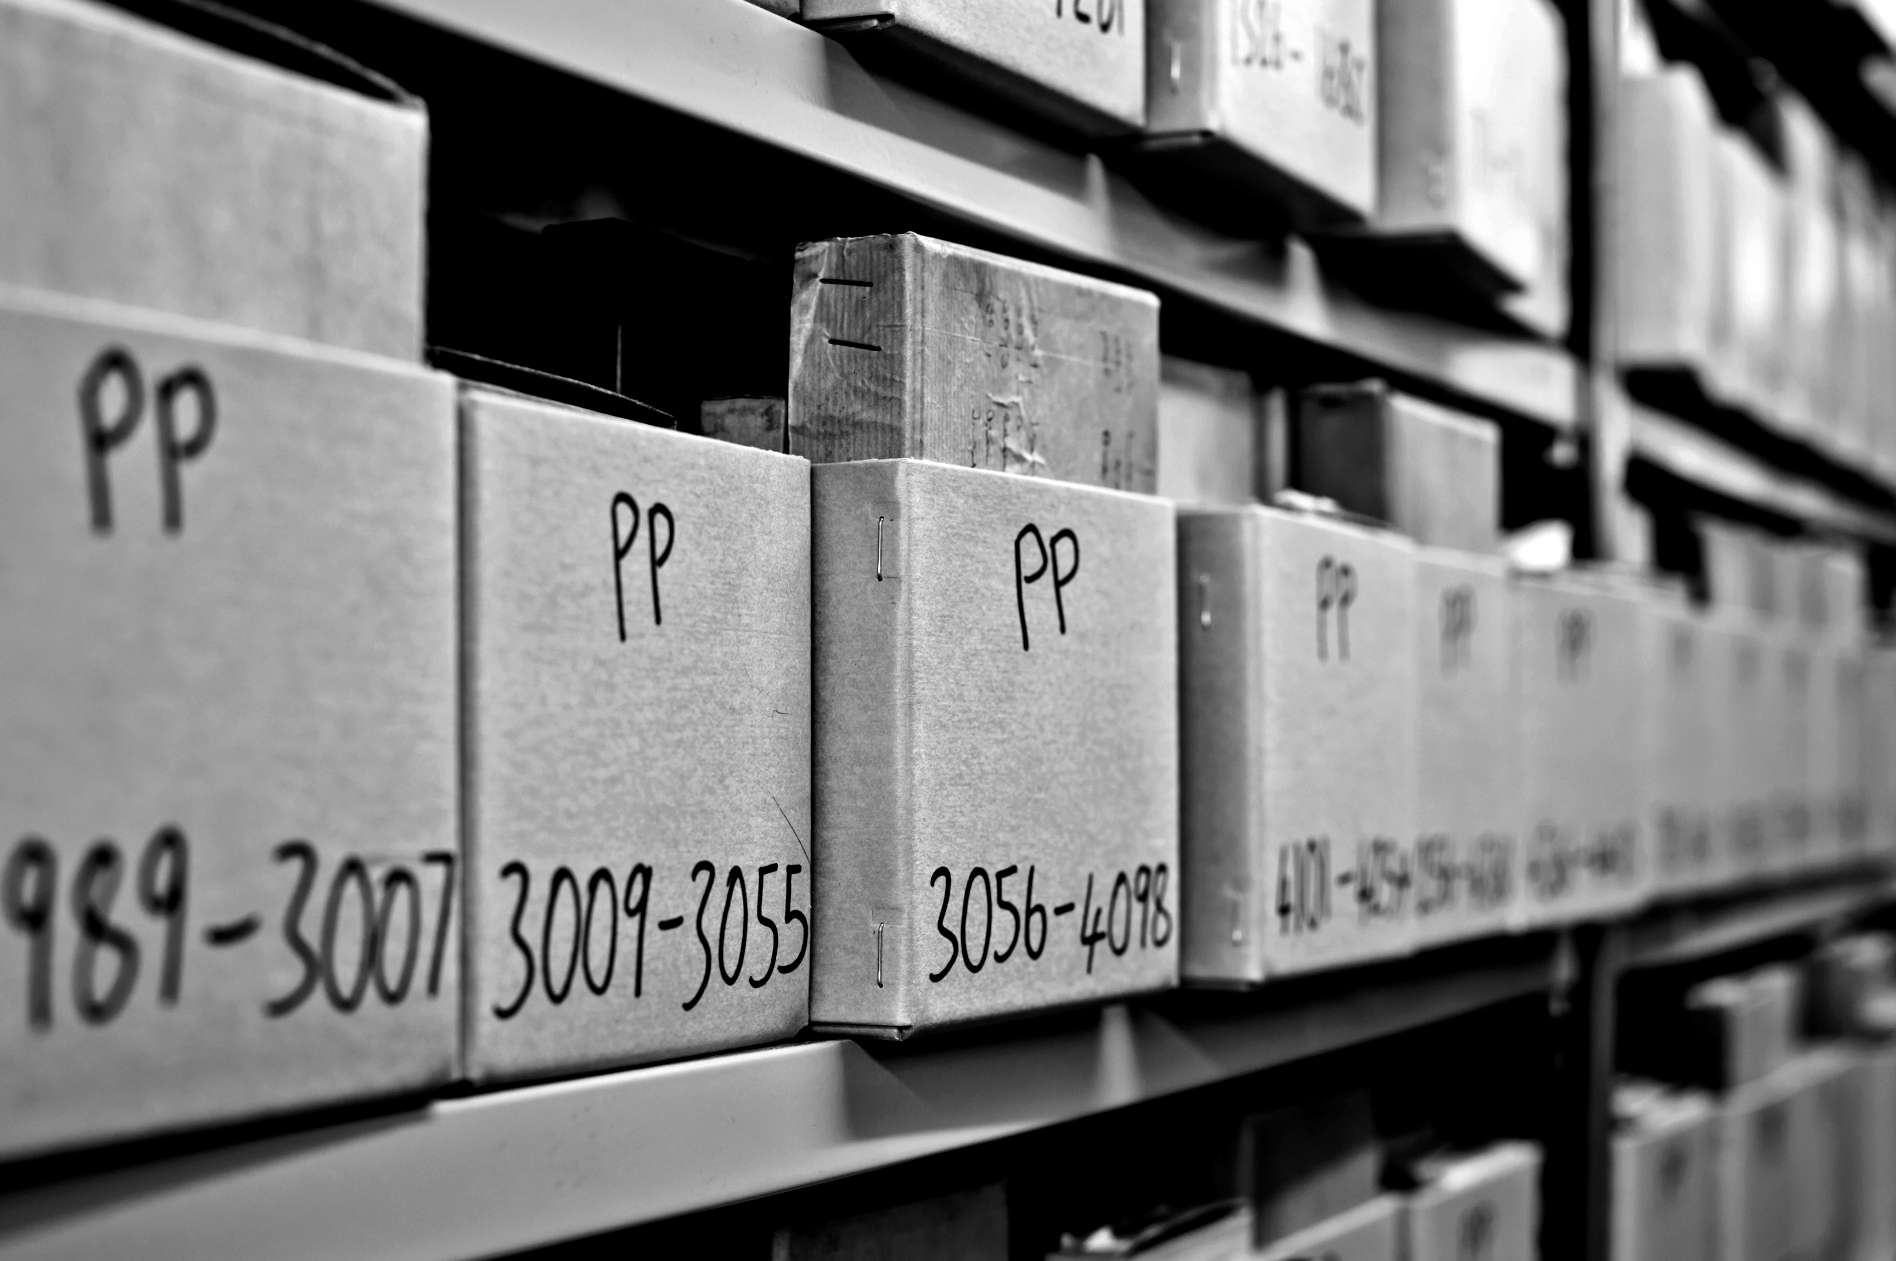 Cremains in boxes on shelves